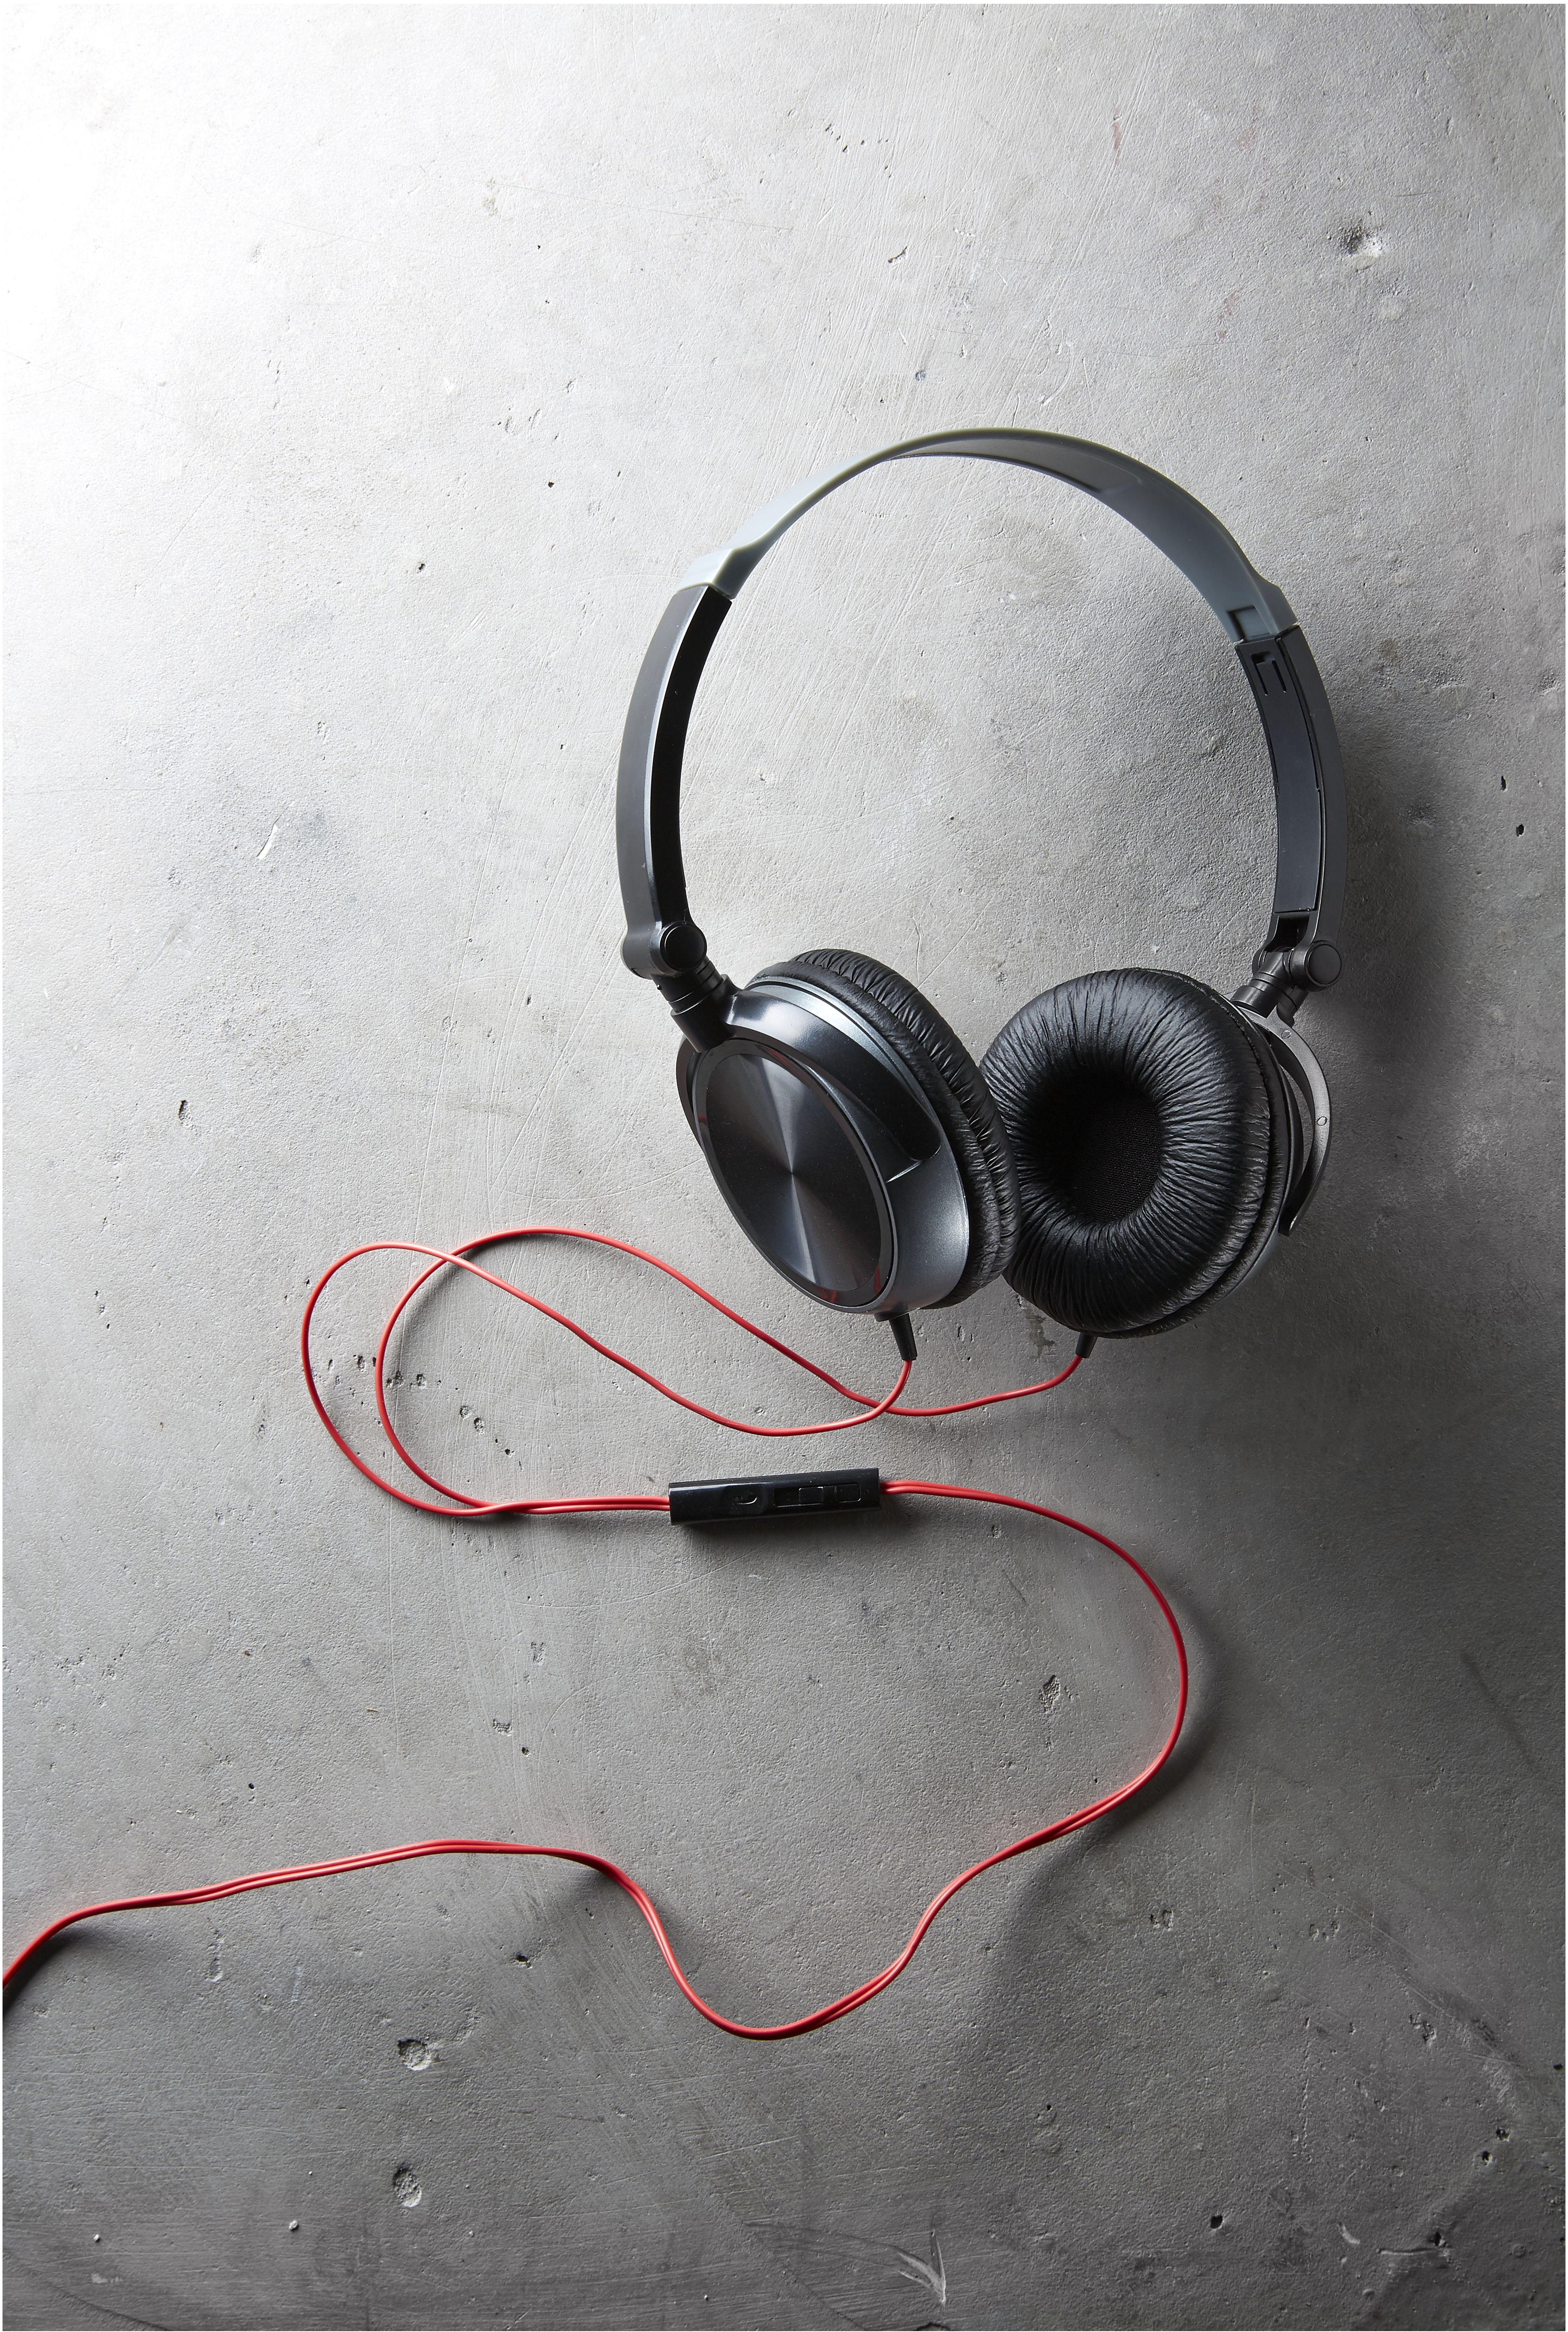 Kmart Foldable Headphones with Inline Controls, RRP$10.00